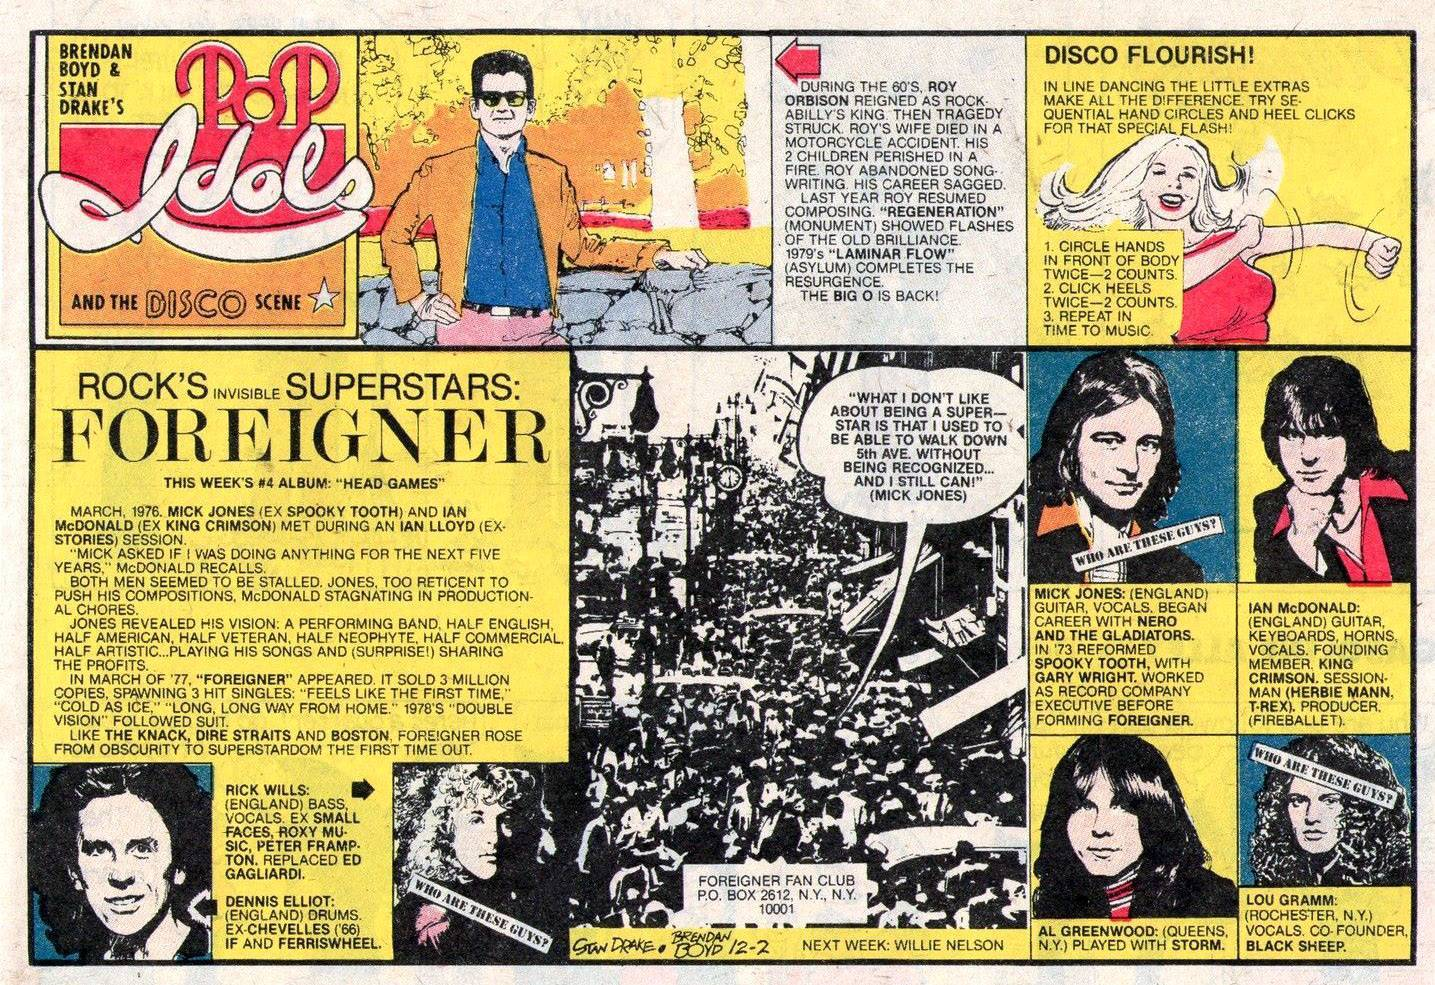 POP IDOLS AND THE DISCO SCENE Newspaper Strip Sunday December 2 1979